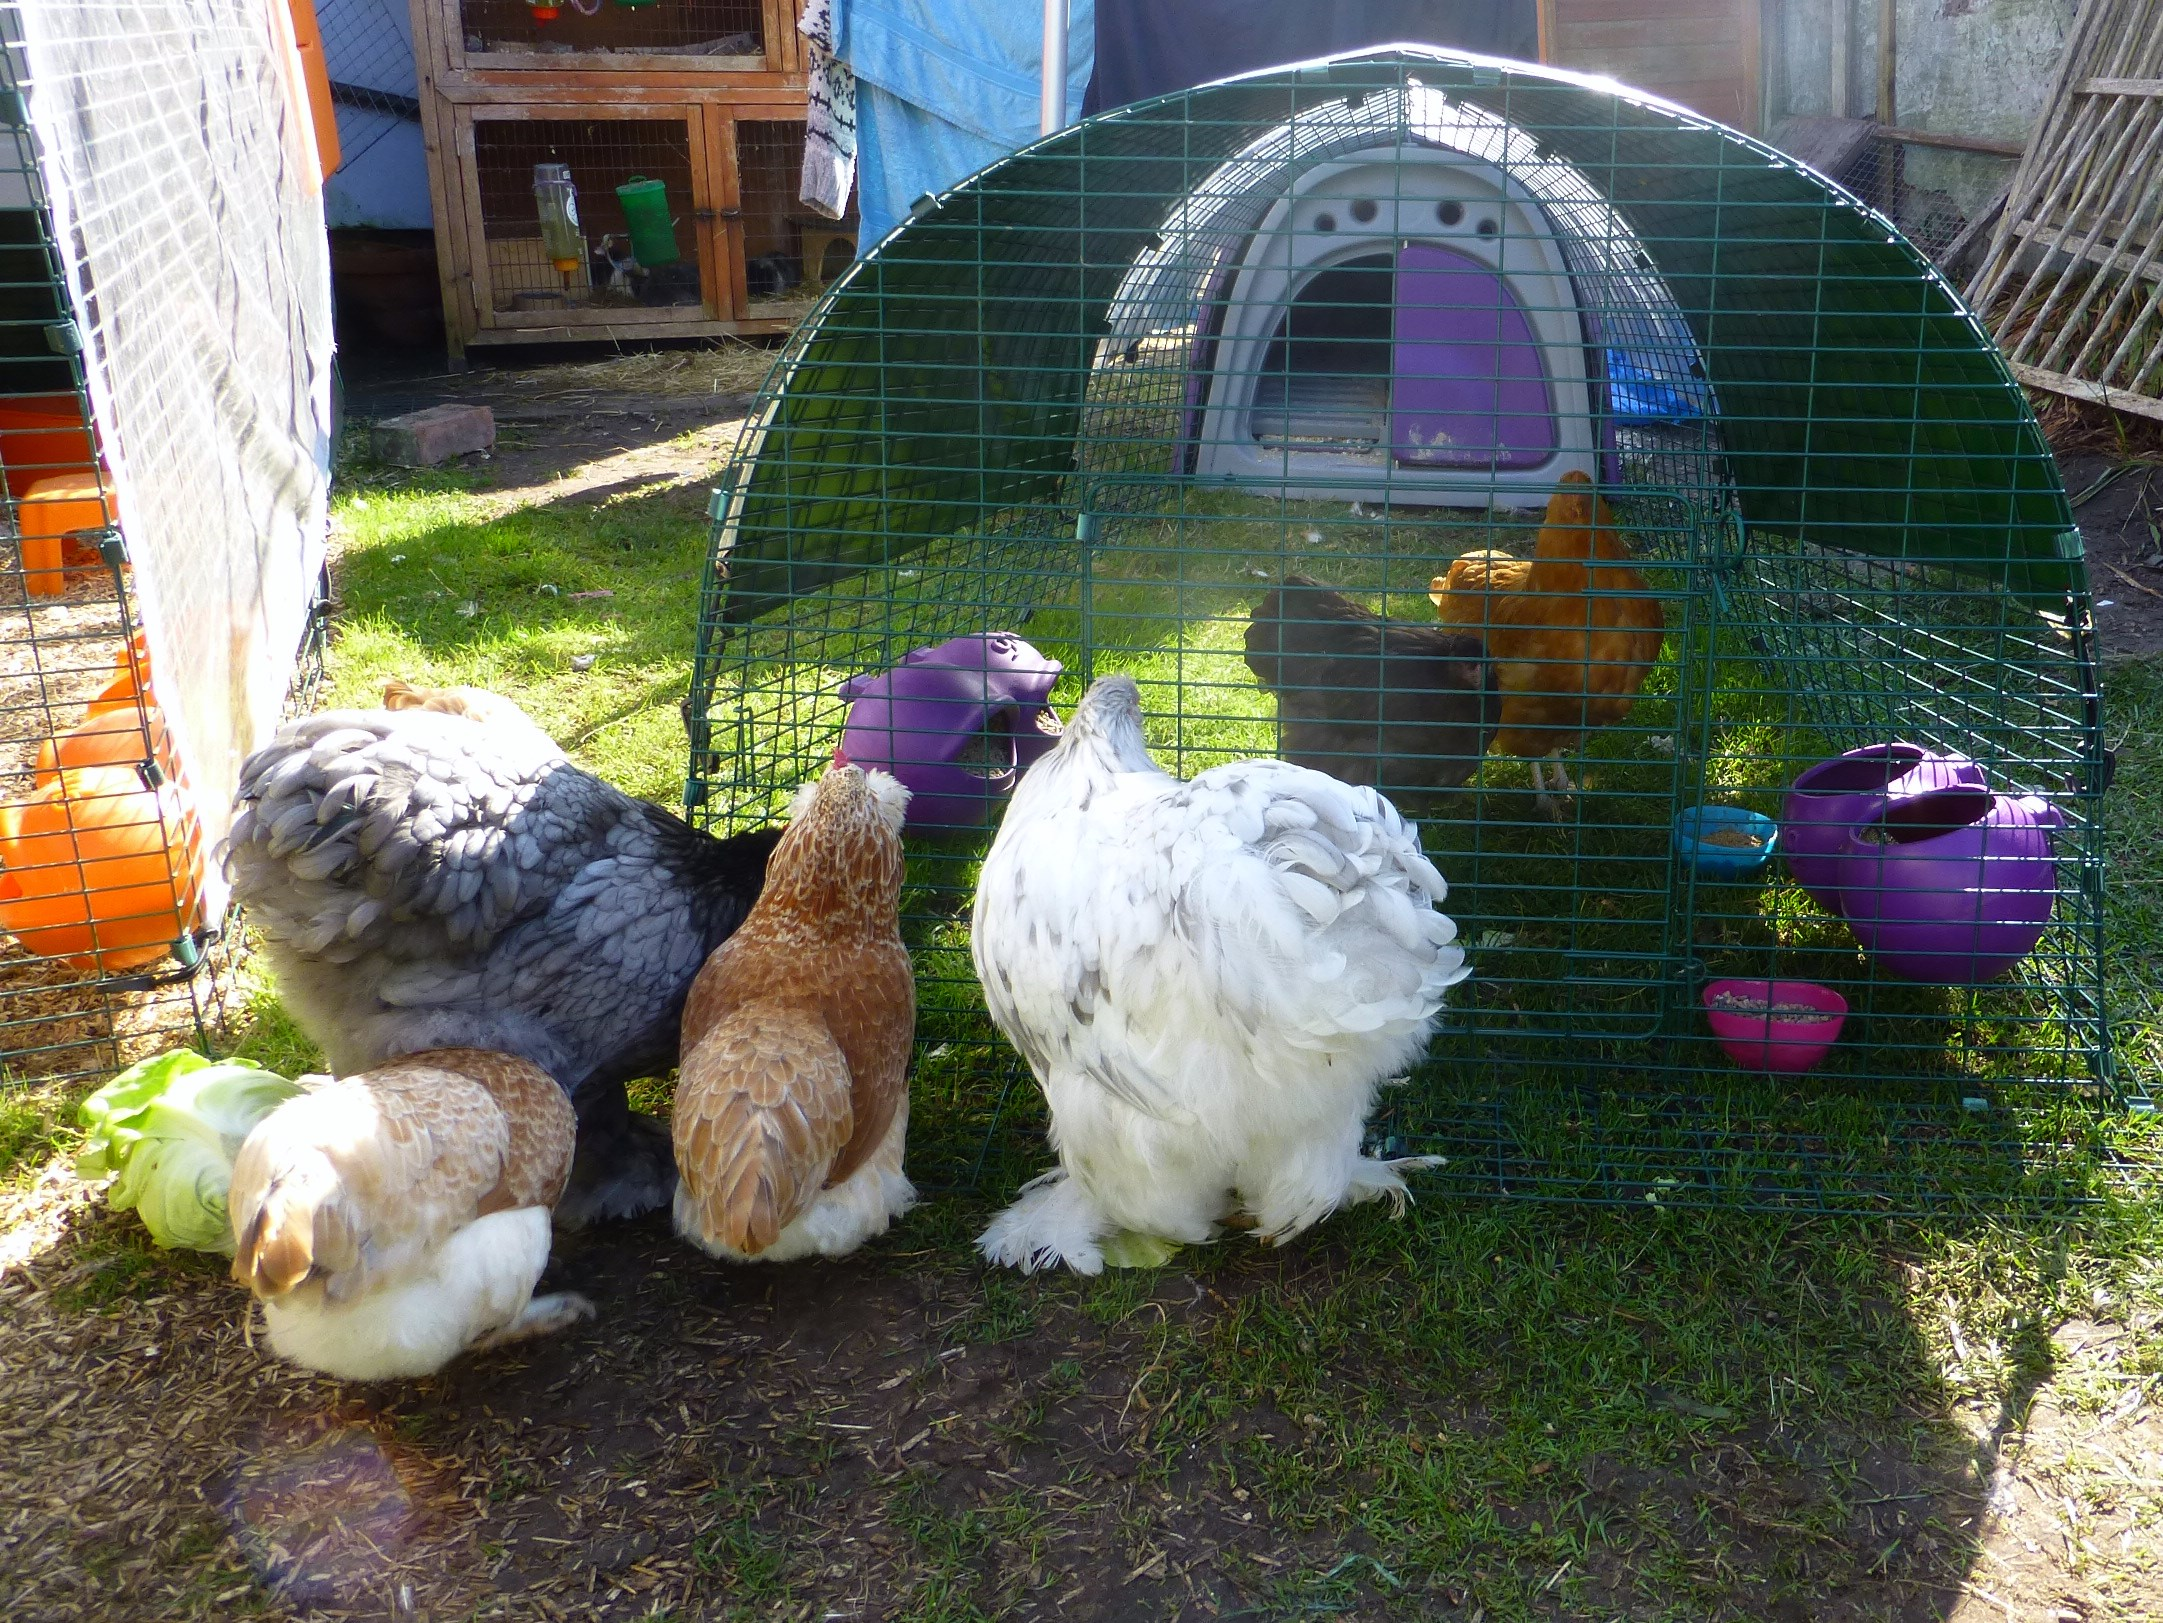 Helen Goodson's hens being introduced to their new Orpington hen friends